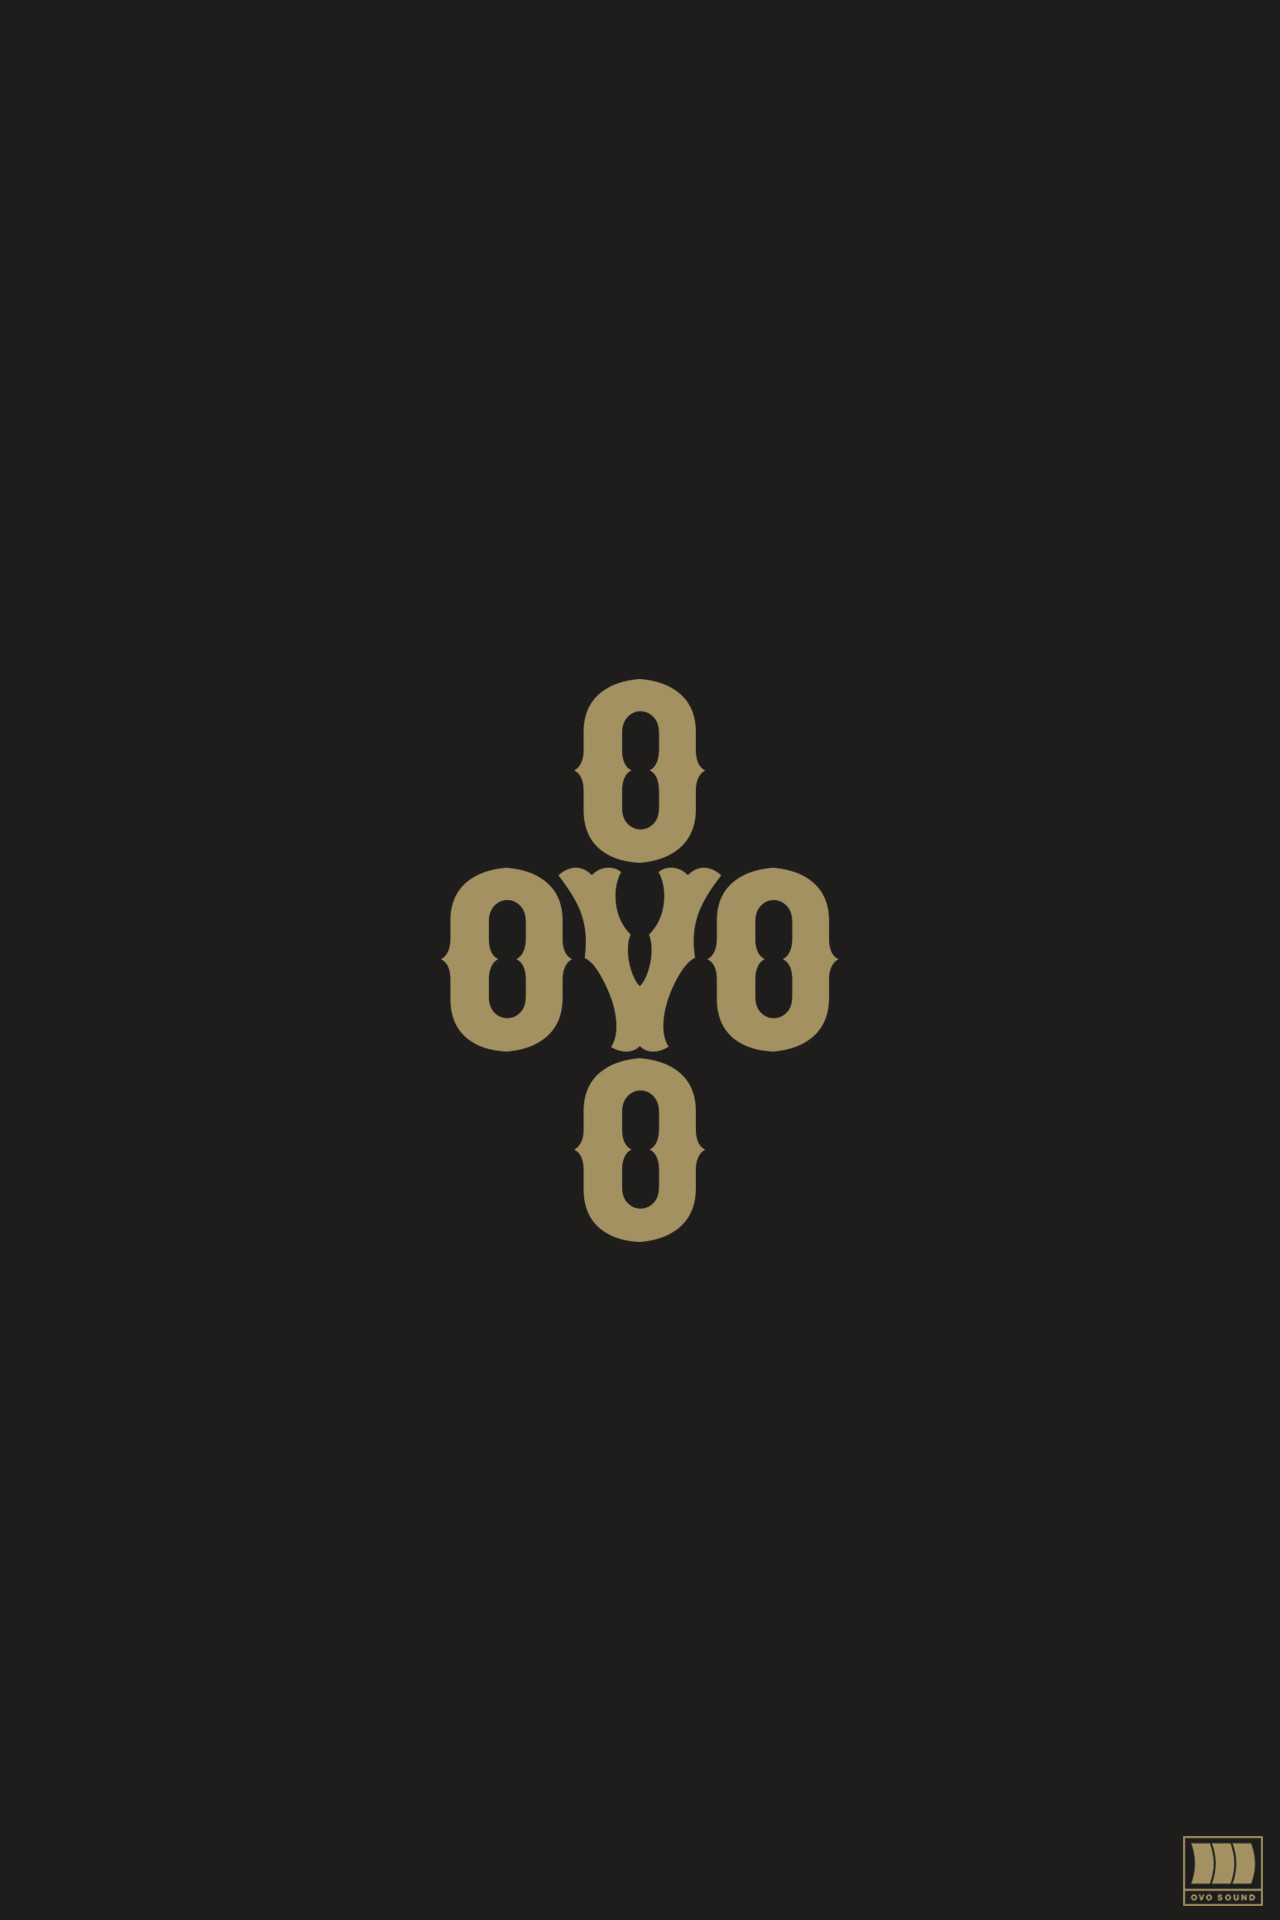 Drake Owl Logo Wallpaper (73+ images) Ovo Drake Iphone Wallpaper